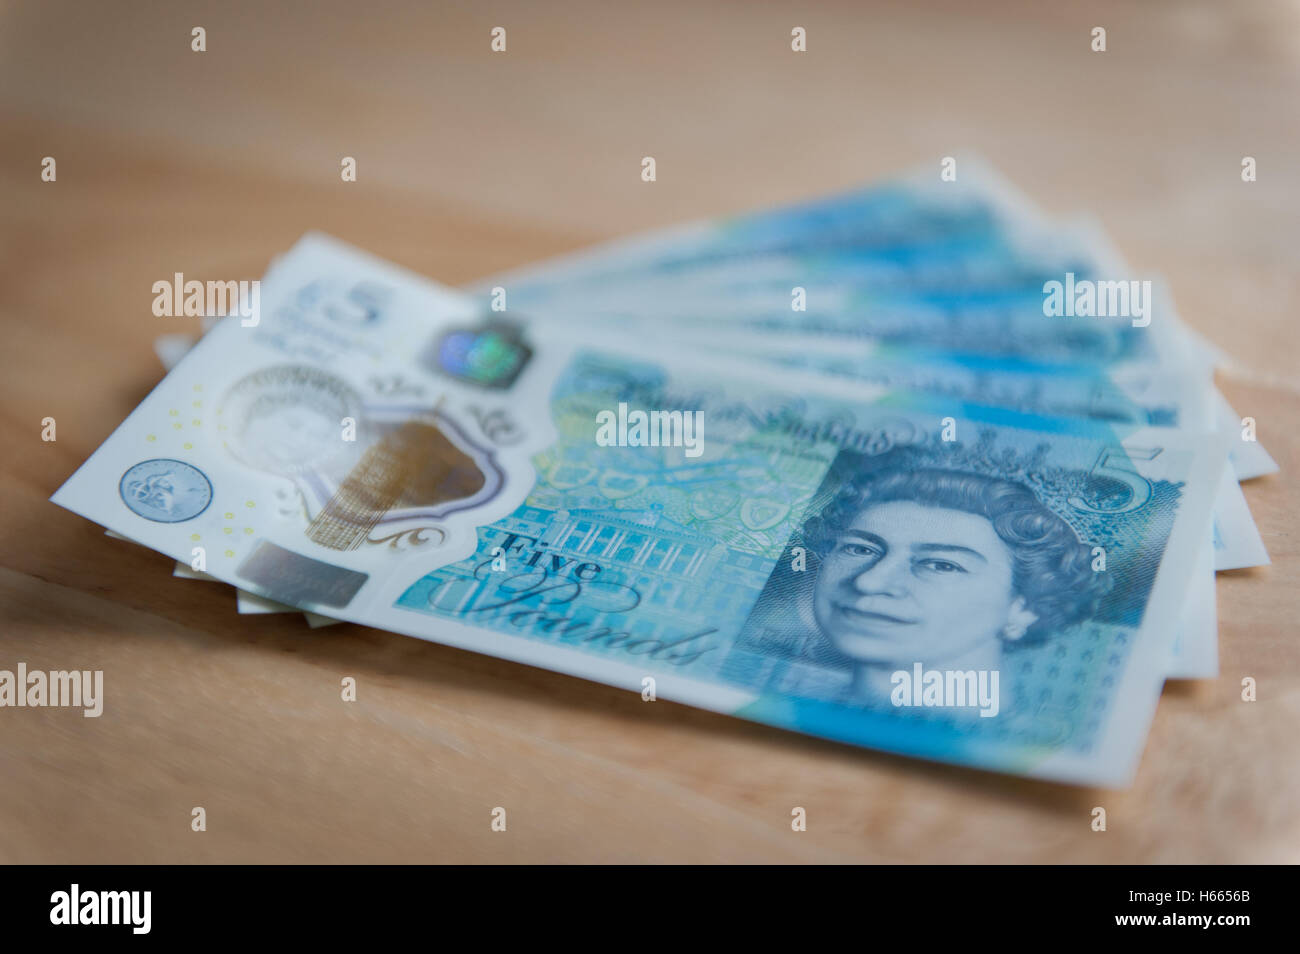 New five pound notes - Stock Image